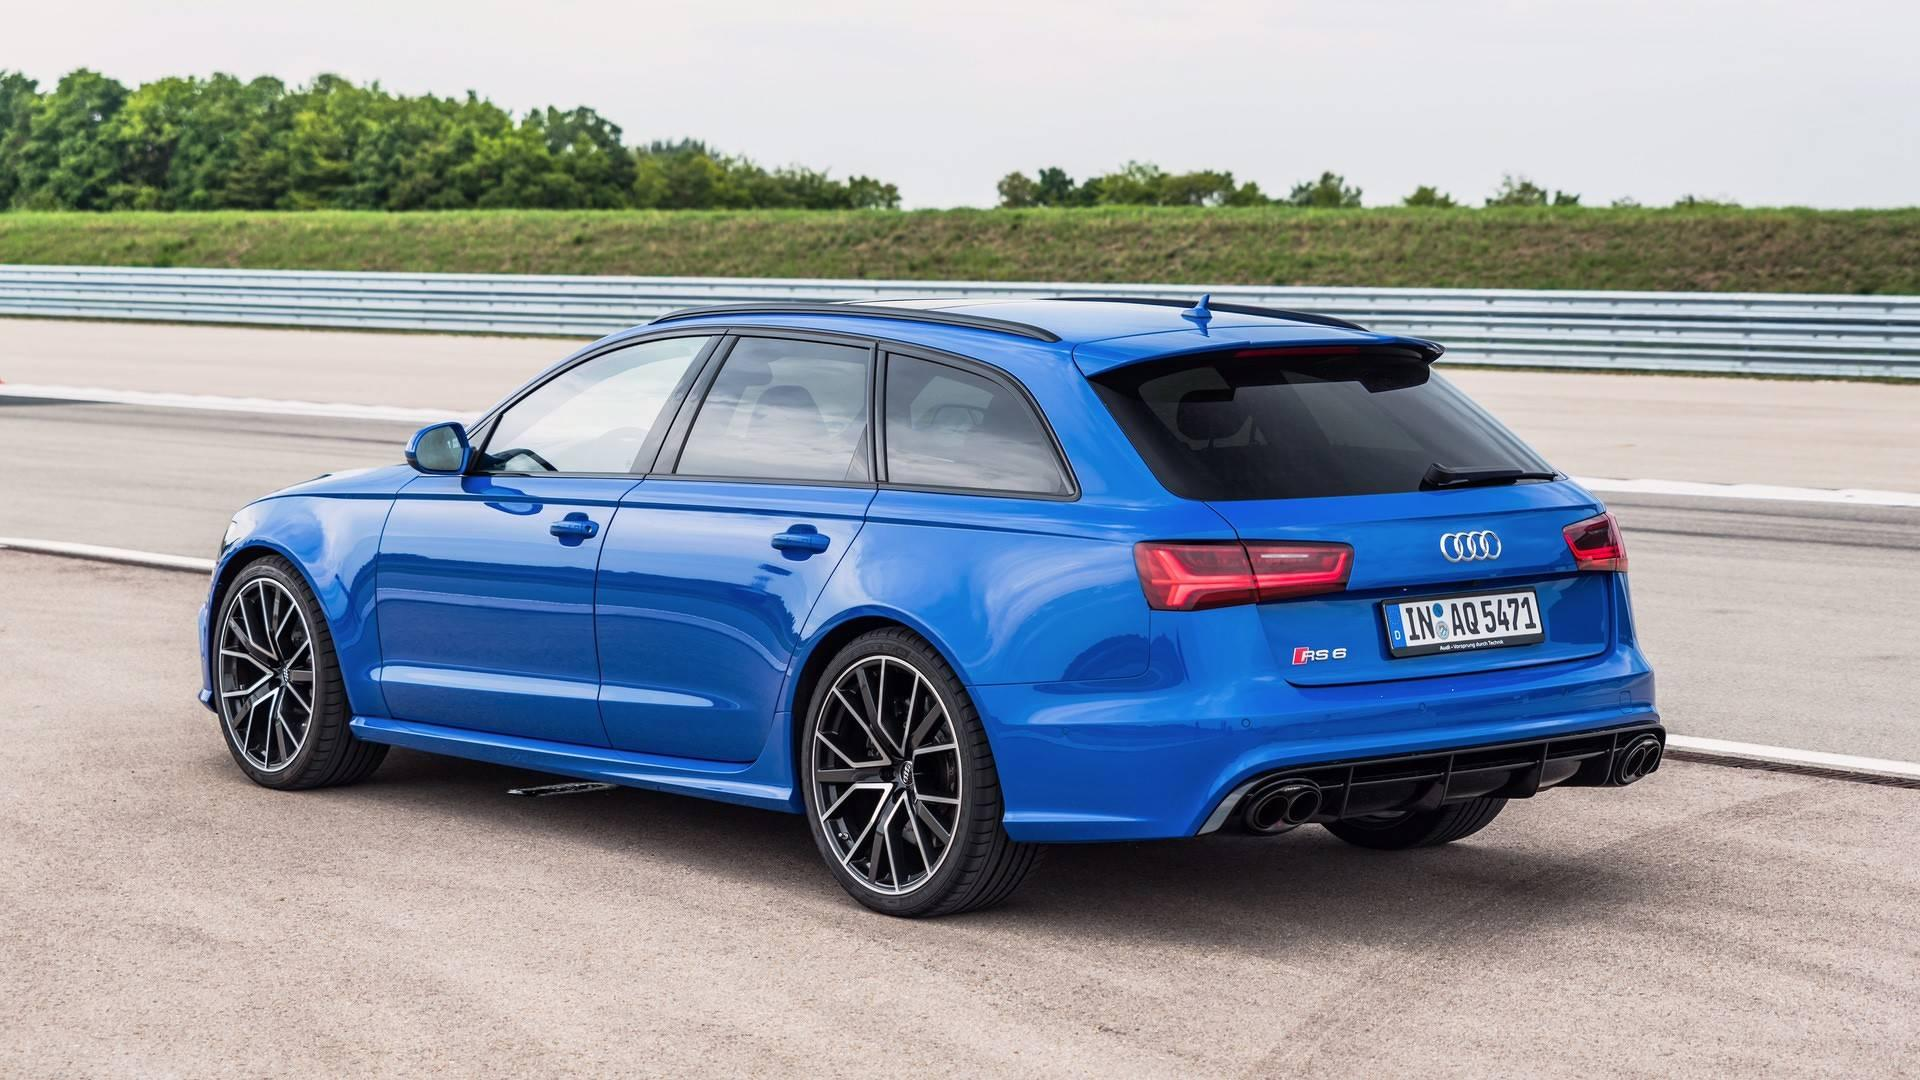 audi rs 6 nogaro edition gaat 320 km u topgear nederland. Black Bedroom Furniture Sets. Home Design Ideas